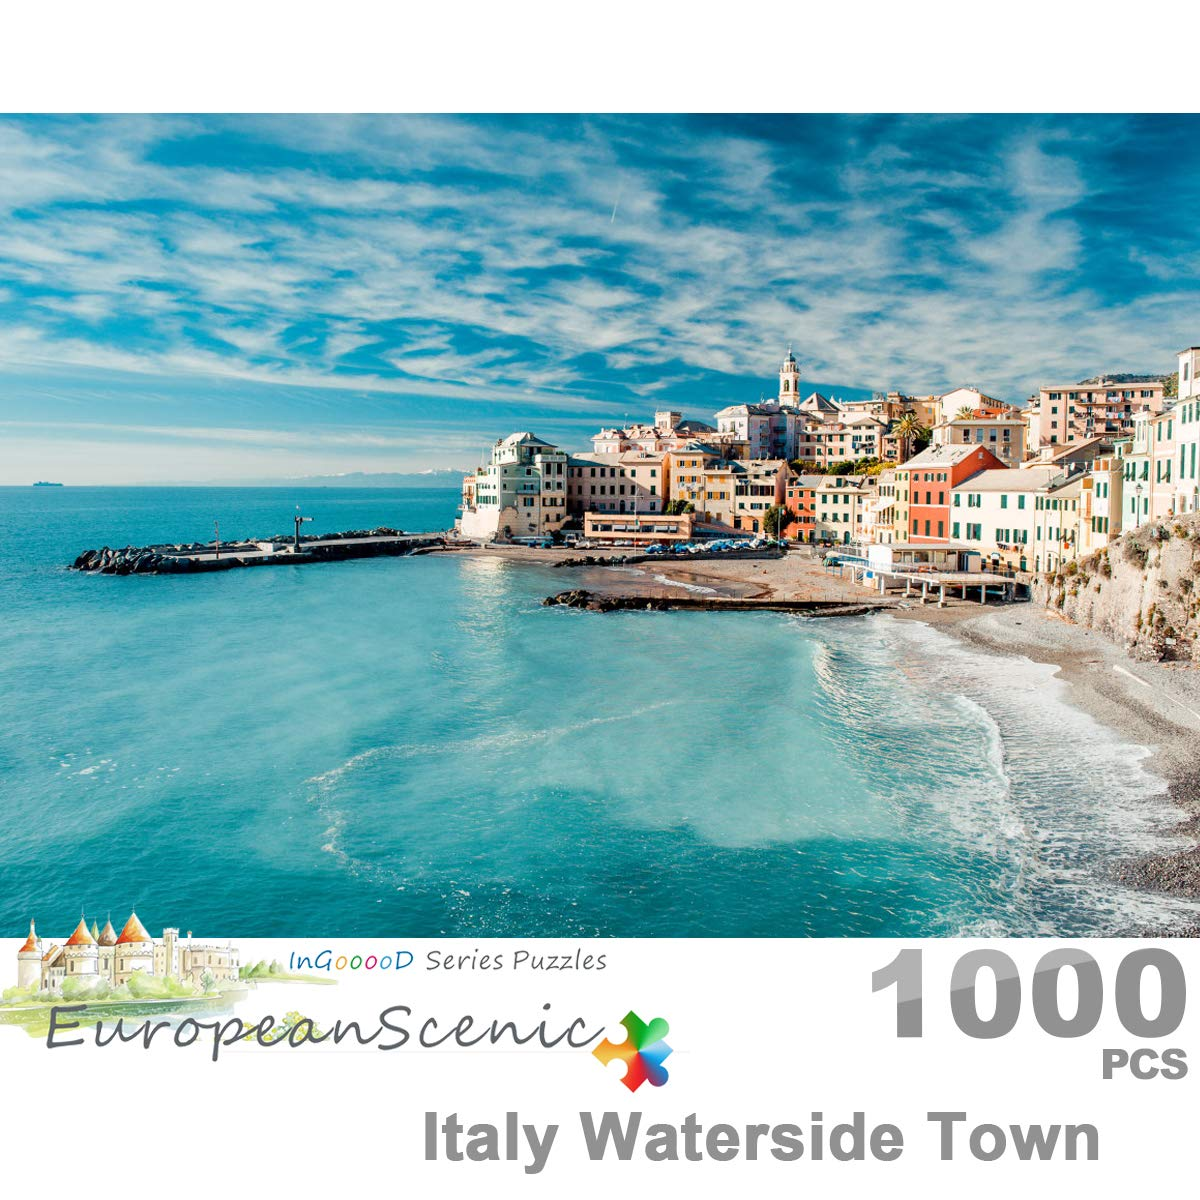 Italy Waterside Town/_IG-0375 Entertainment Toys for Adult Special Graduation or Birthday Gift Home Decor Jigsaw Puzzle 1000 Pieces European Scenic Series Ingooood